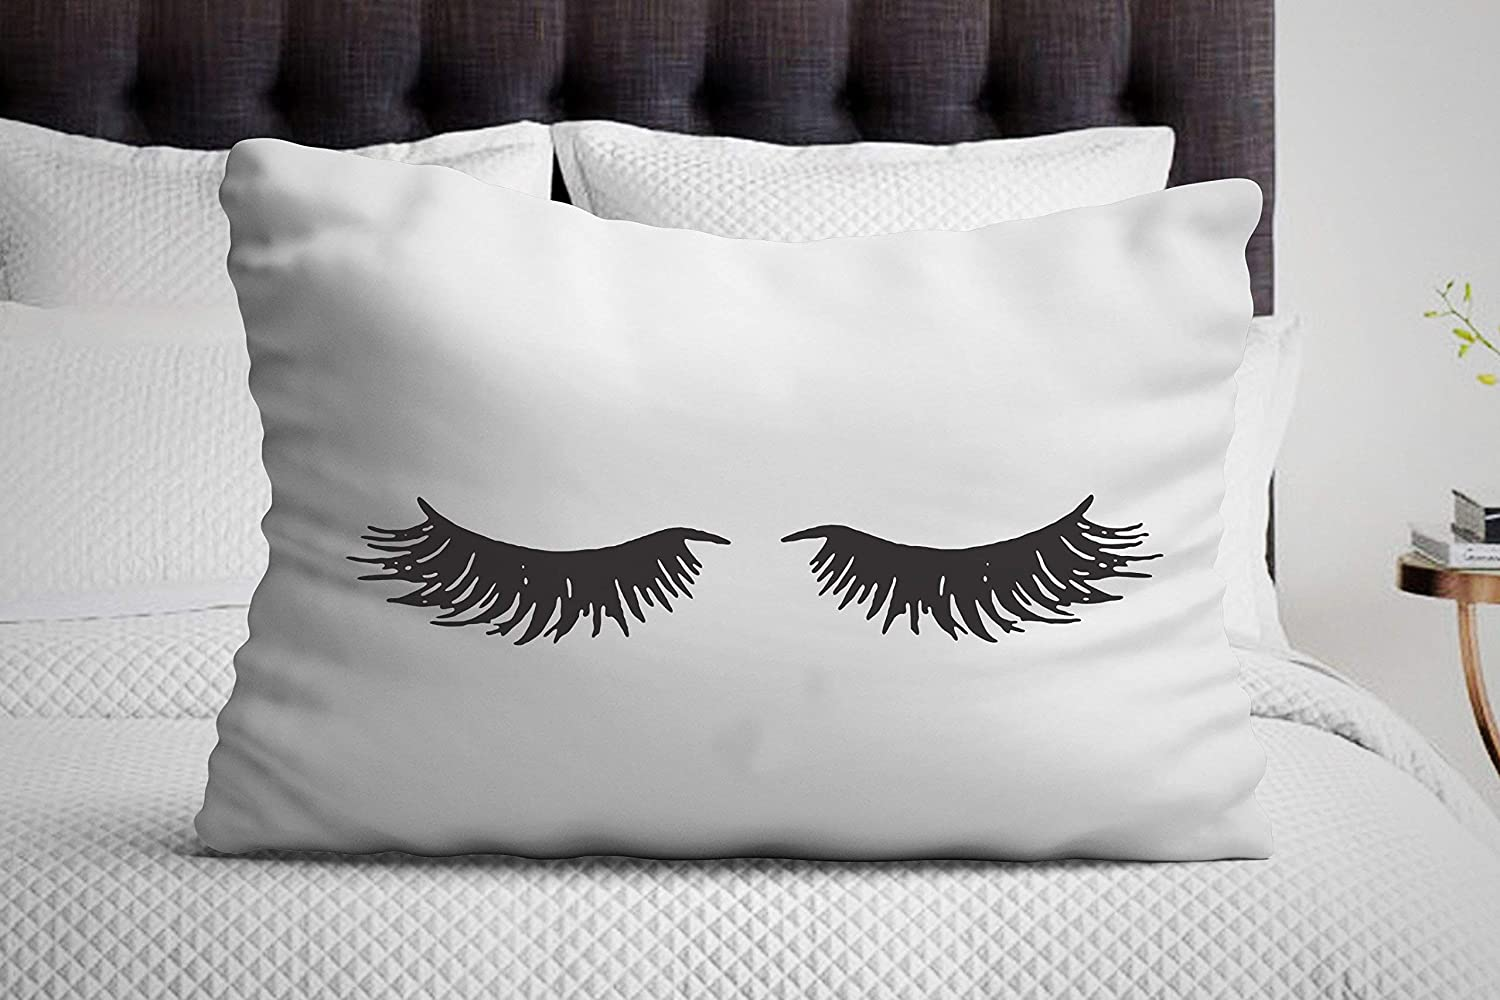 sleeping eyelash pillow case bedroom decor gift for her funny gifts decorative pillow covers single pillowcase unique missing gifts